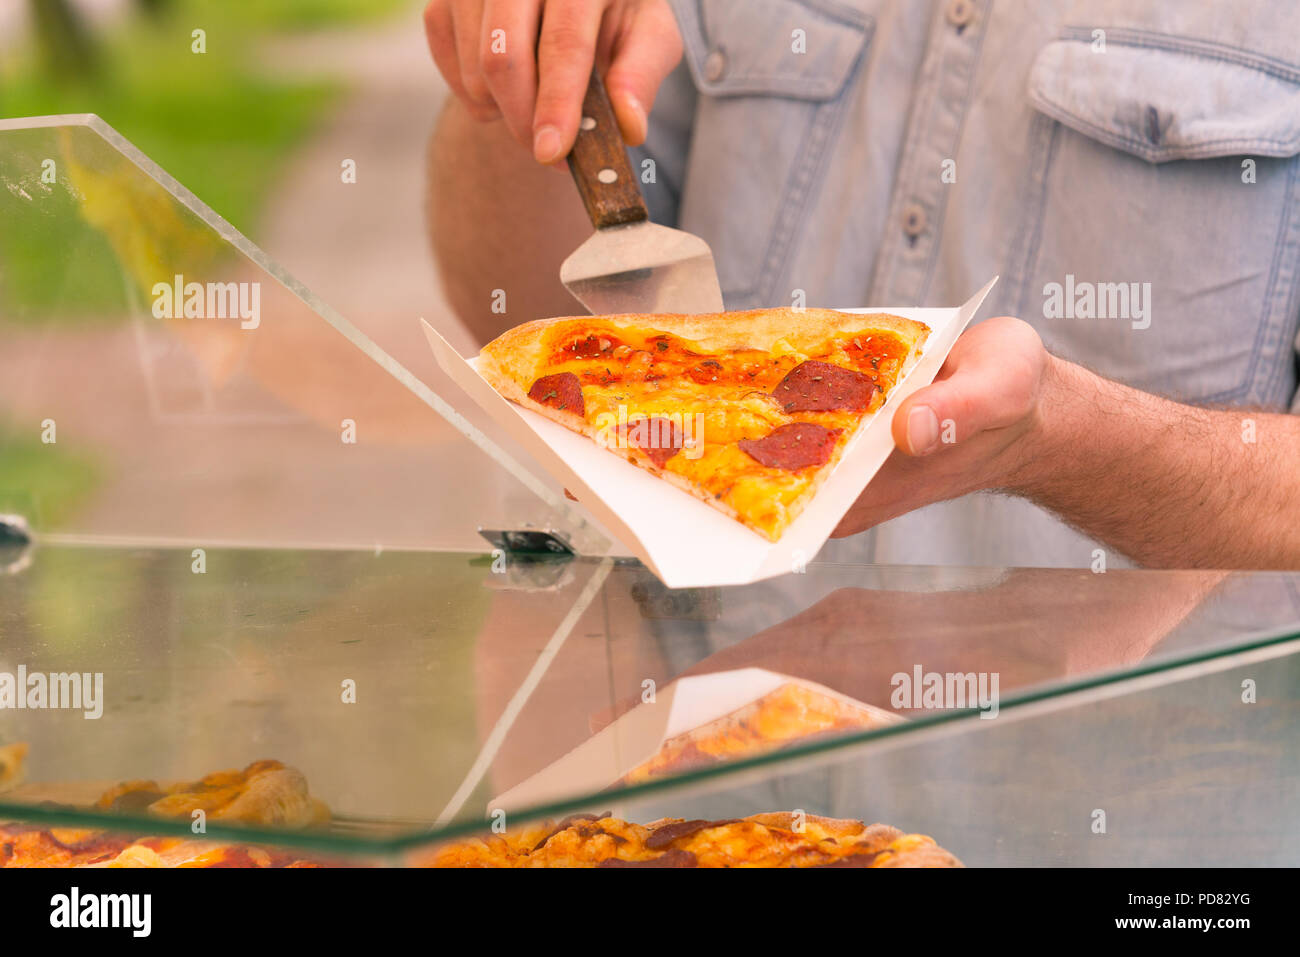 A street food vendor selling pizza by slice outdoors - Stock Image